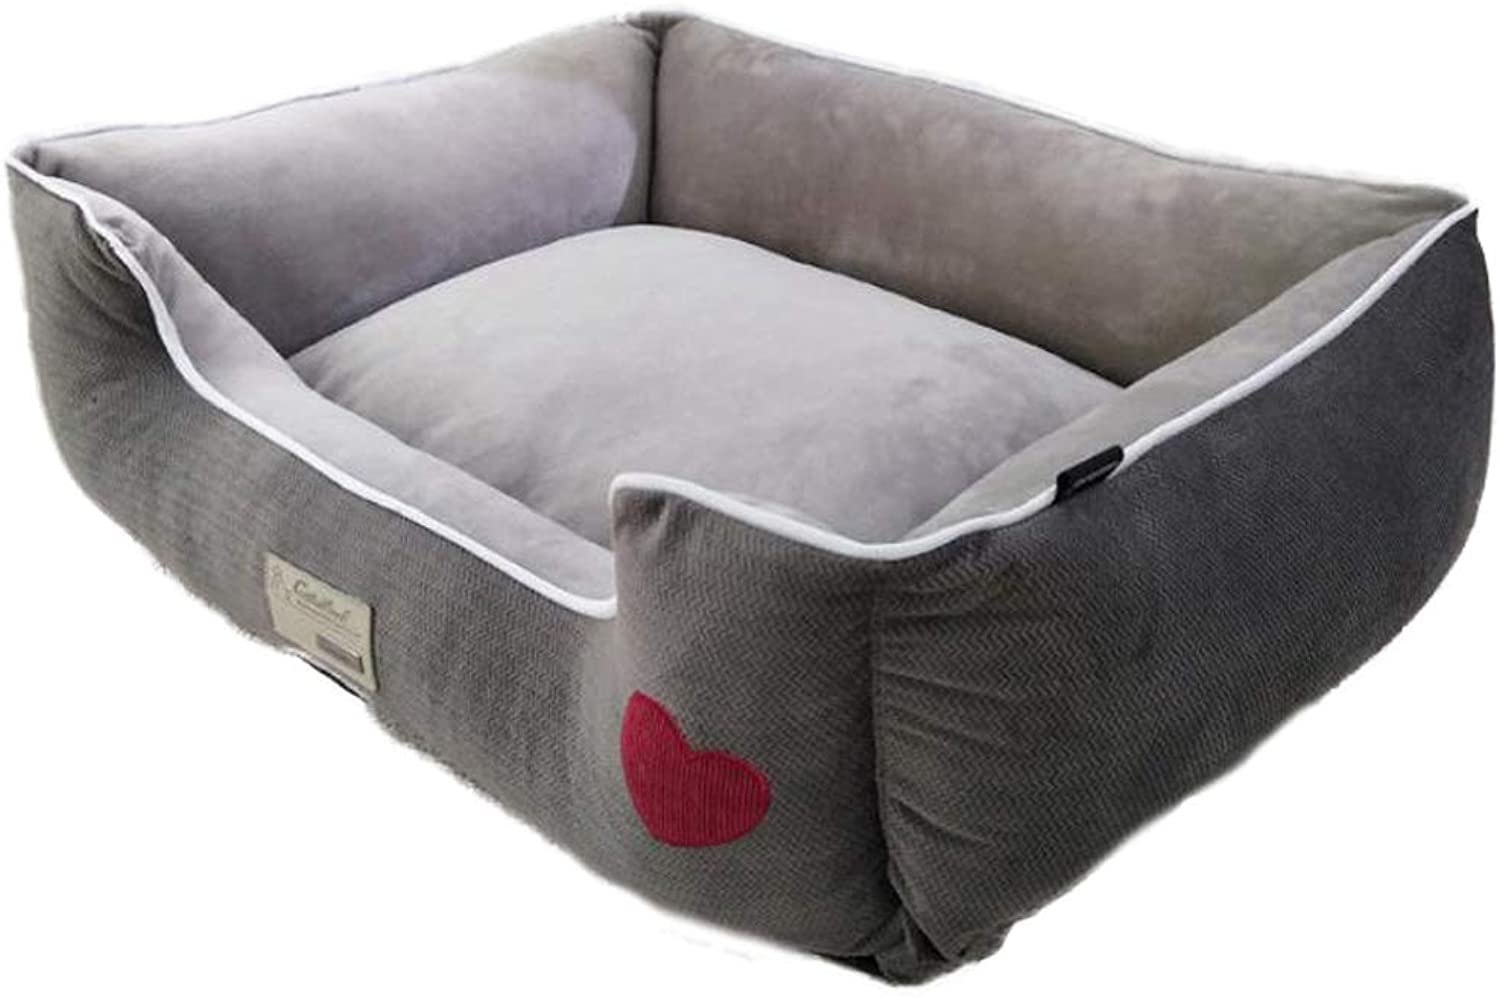 BYCWS Pet CaveDog Bed for Small Dogs Cat Bed Cave for Indoor Cats Self Warming Pet Bed Warm Dog Bed Pet Cave Sleep Zone Cuddle Cave Pet Bed,29.53x23.62x9.84in